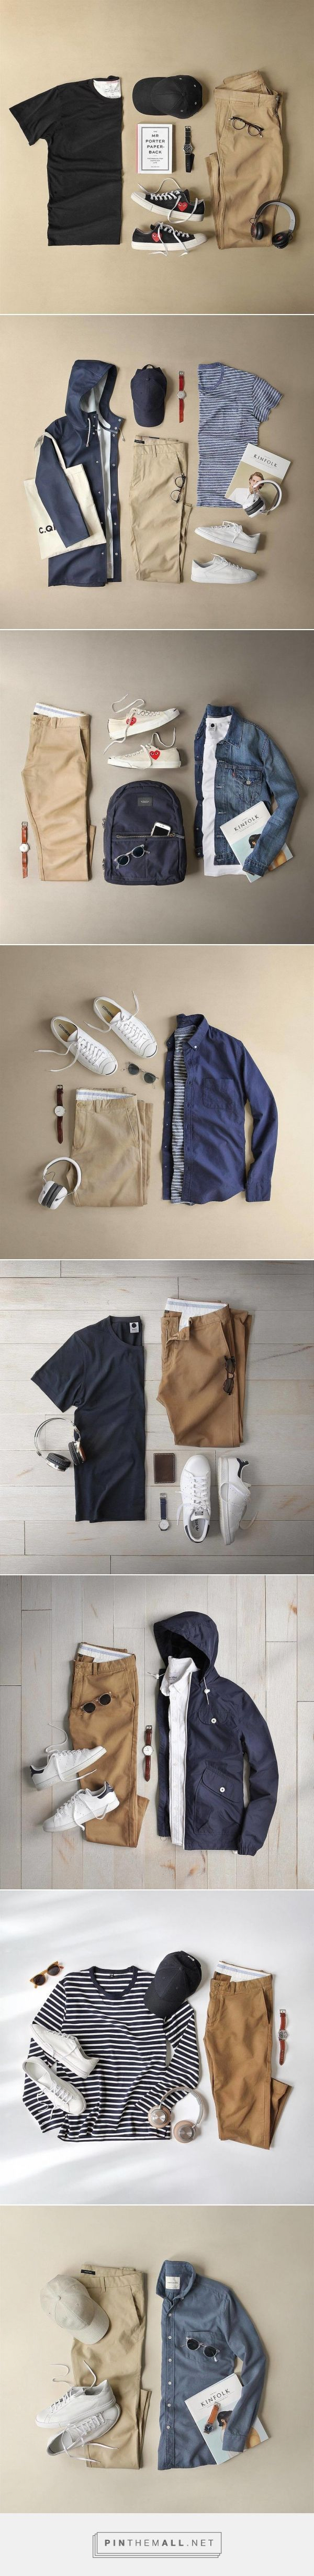 How To Wear Khaki CHINOS for men. #mensfashion #Fashion #MensFashionChinos